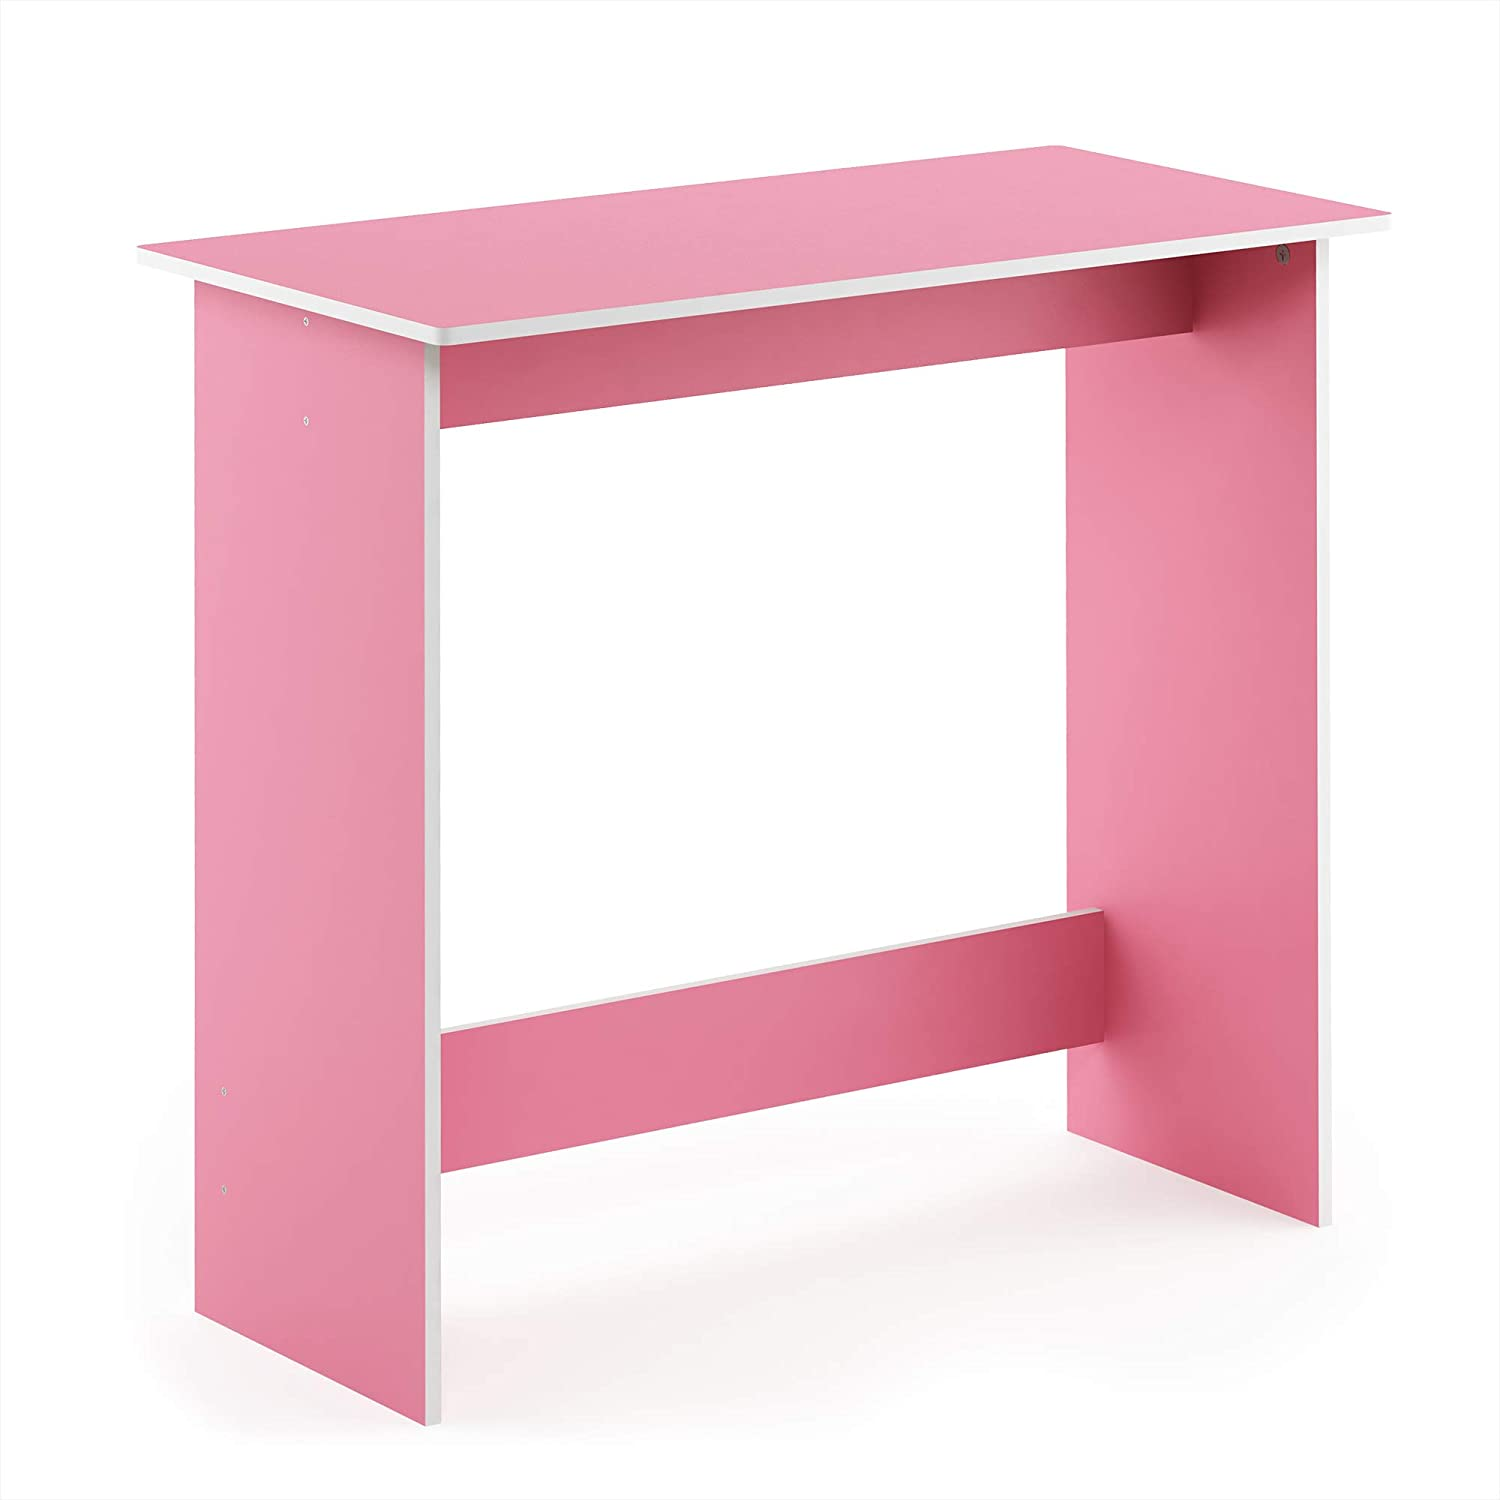 FURINNO Simplistic Study Table, Pink